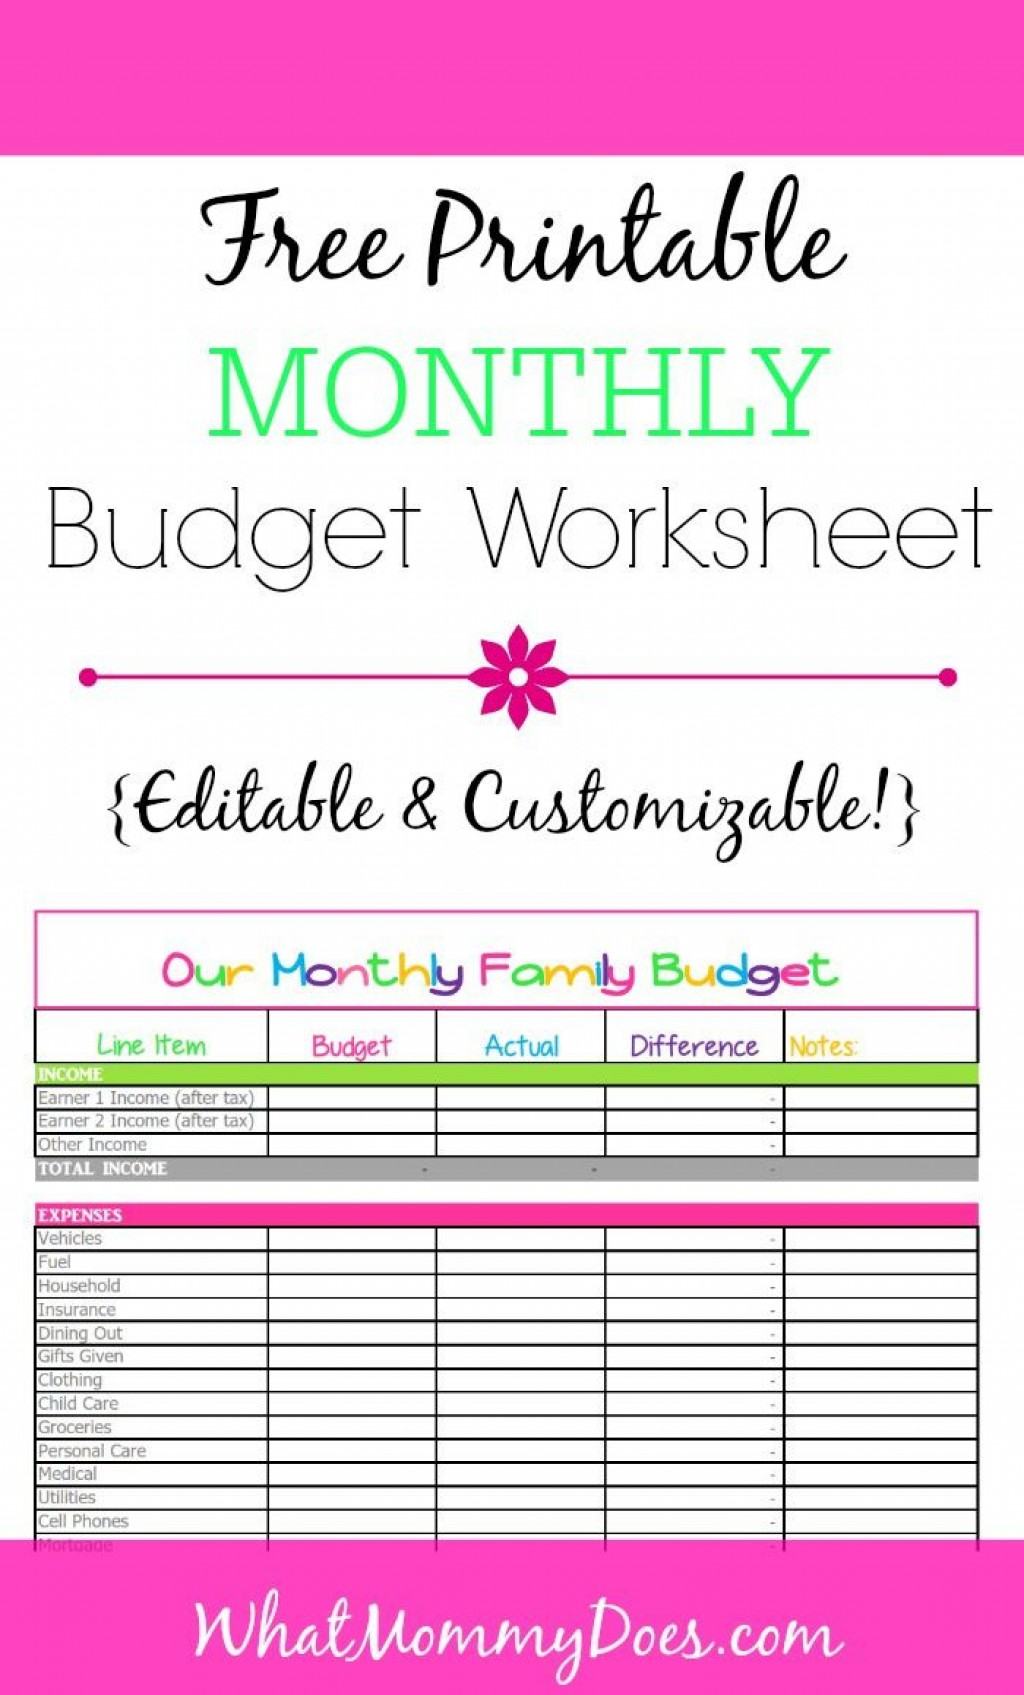 006 Stupendou Simple Monthly Budget Template Free Printable Photo Large